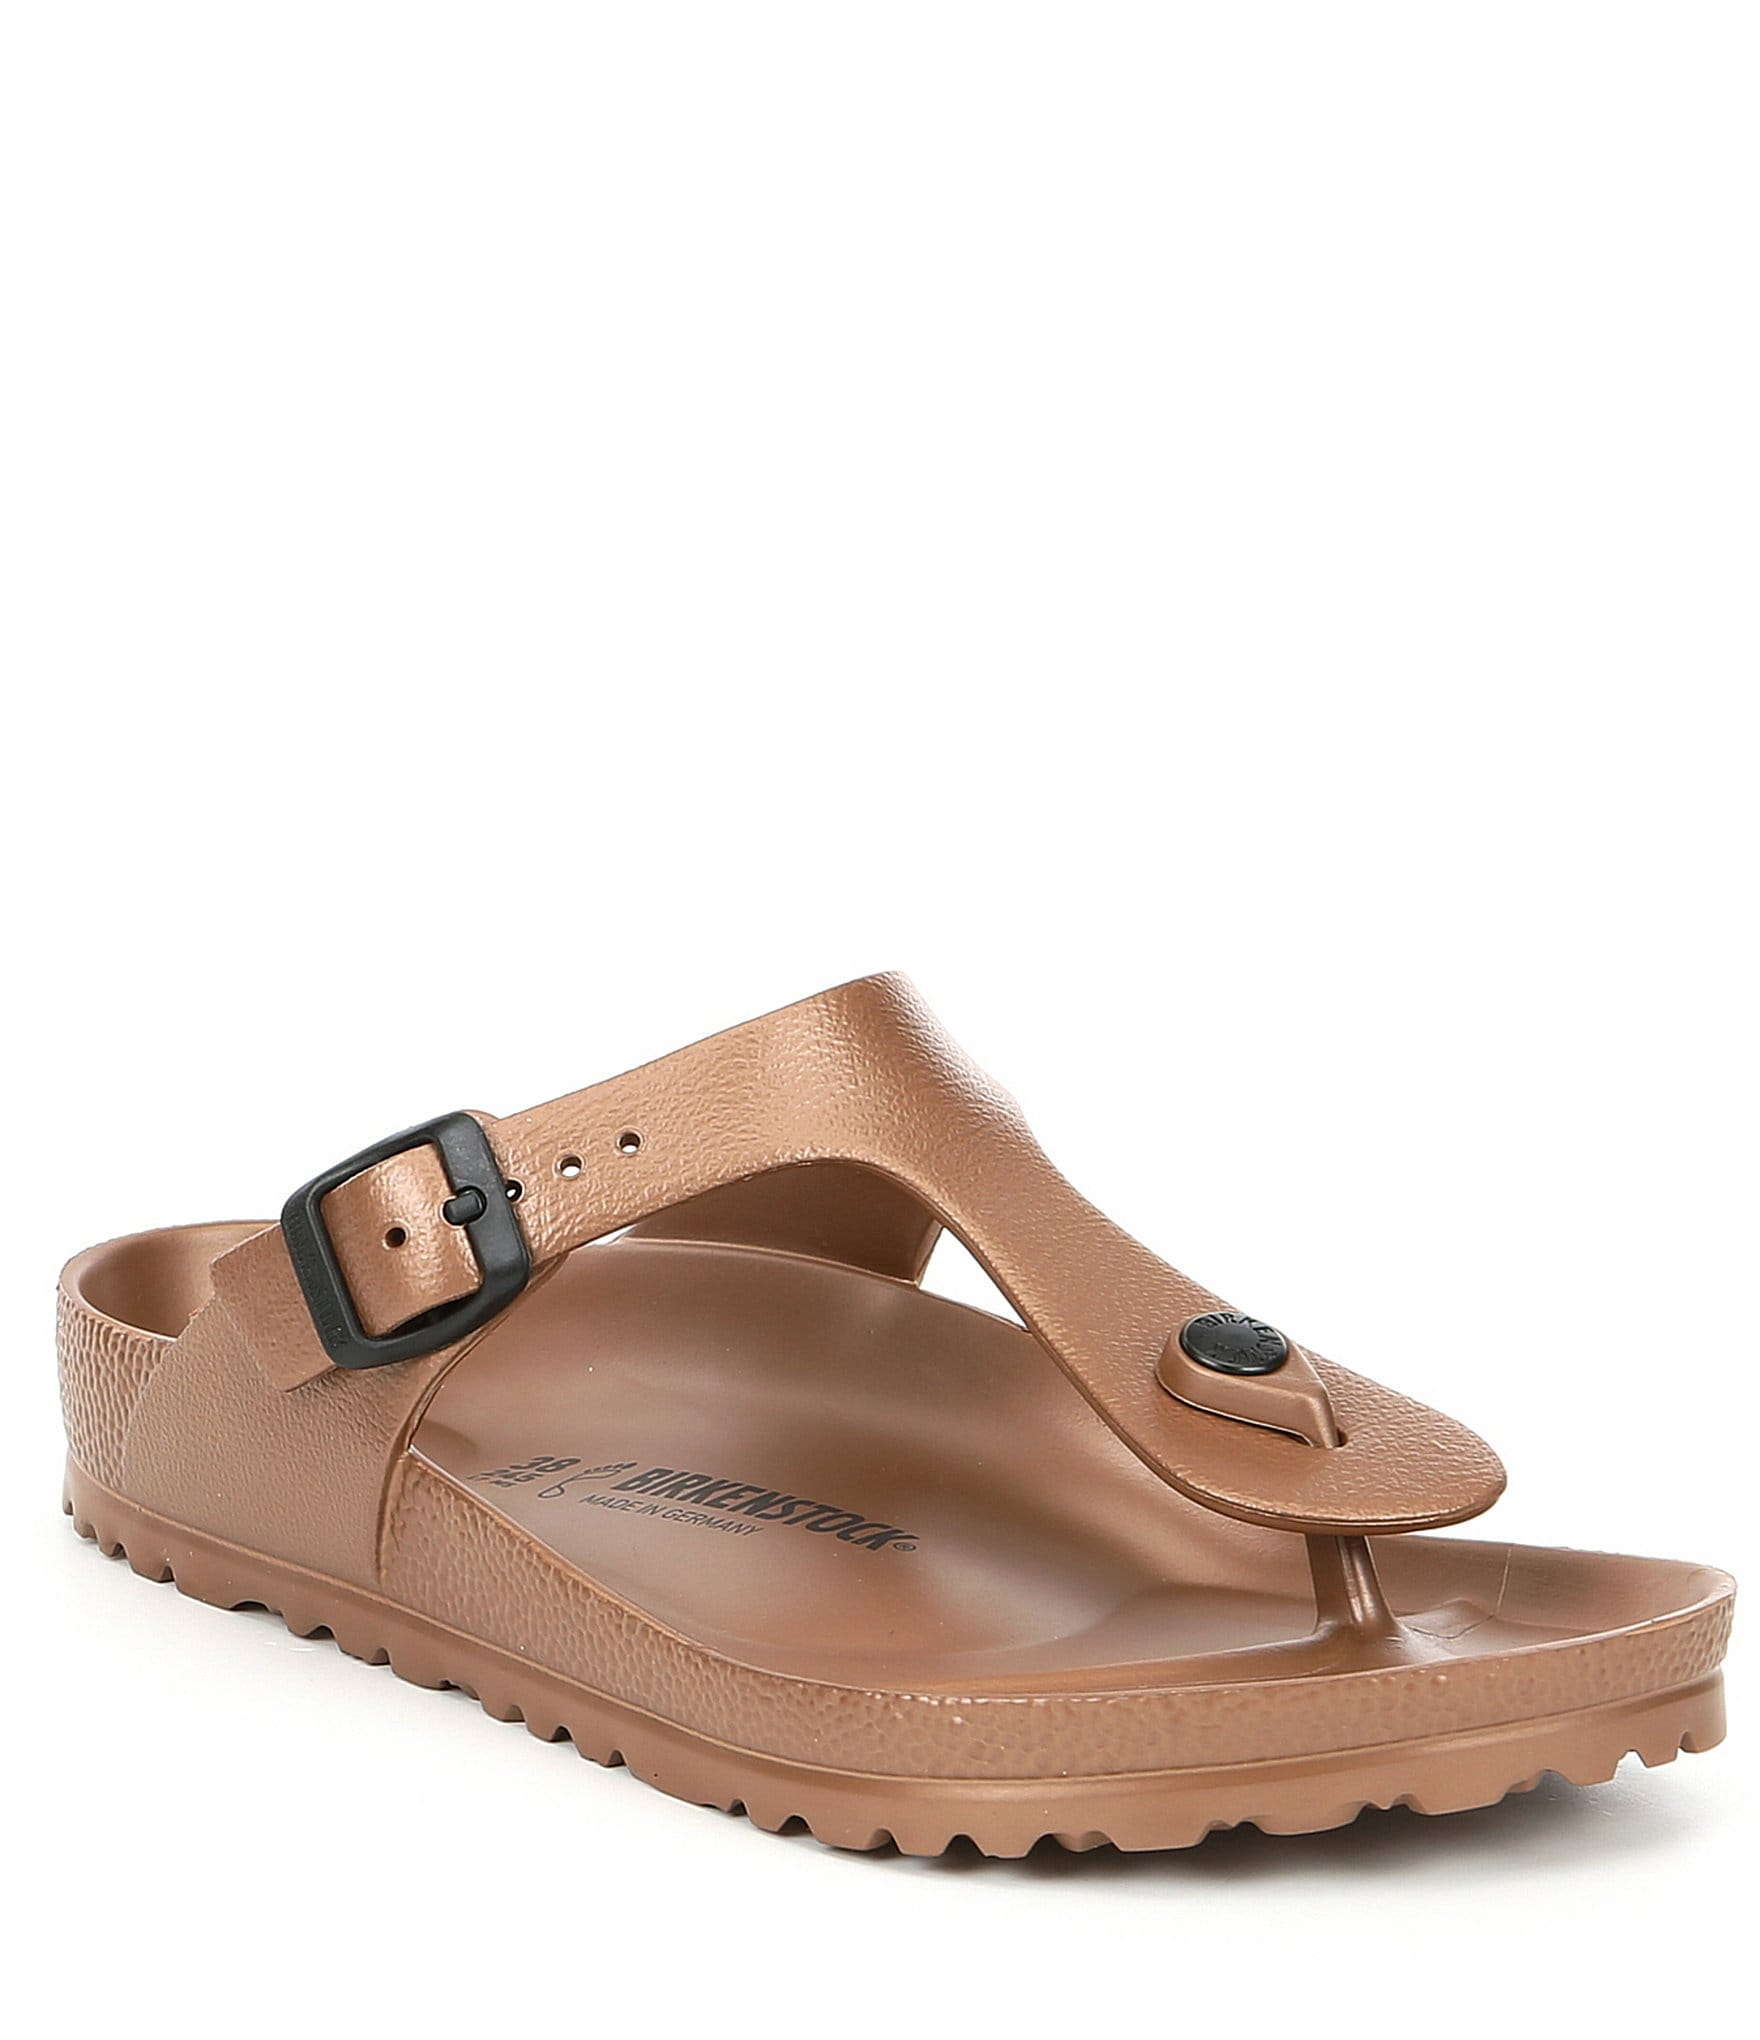 c7549b69ba038 Birkenstock Women s Shoes